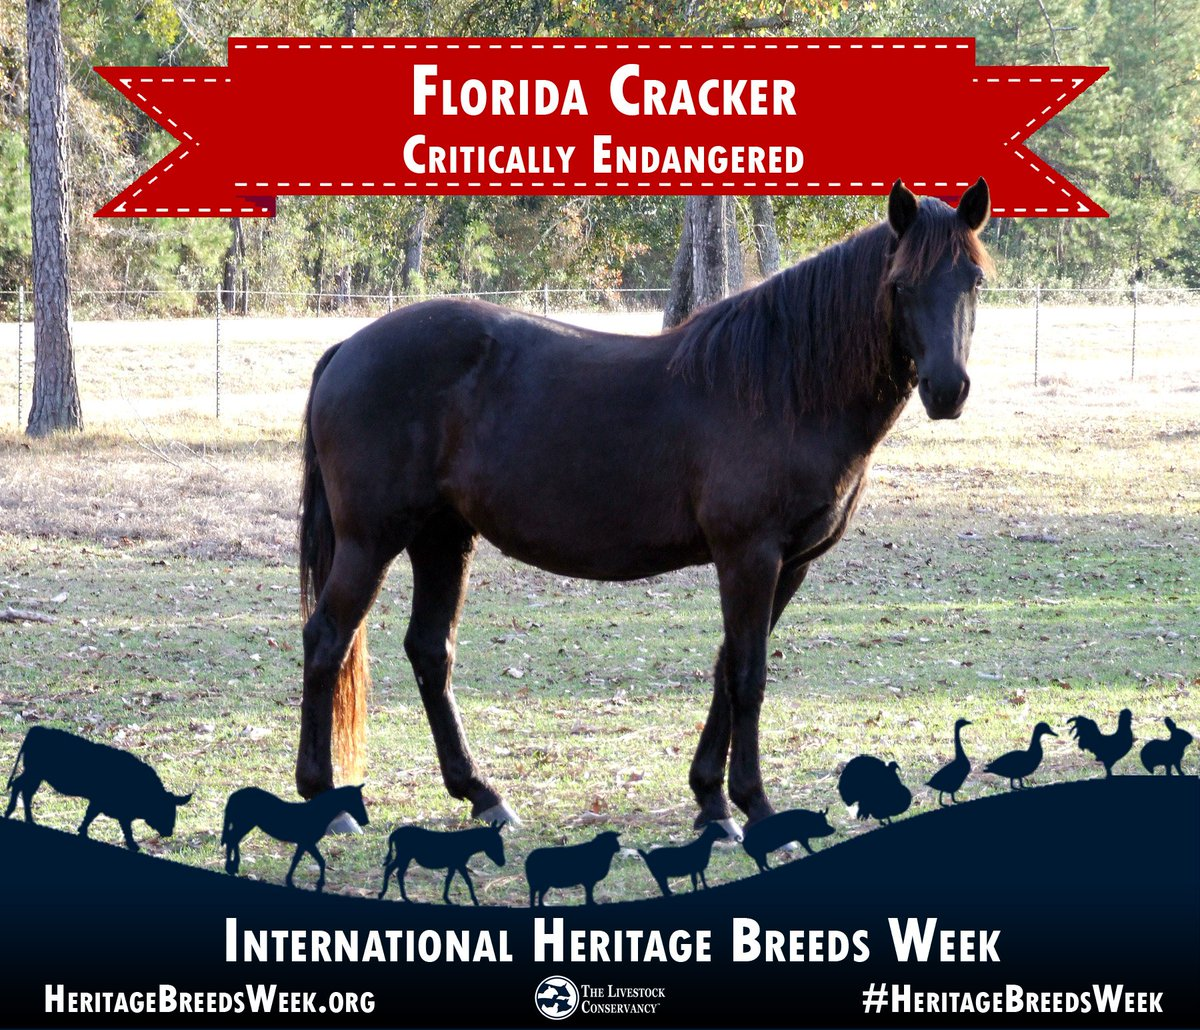 Livestockconservancy On Twitter Florida Cracker Horse Critically